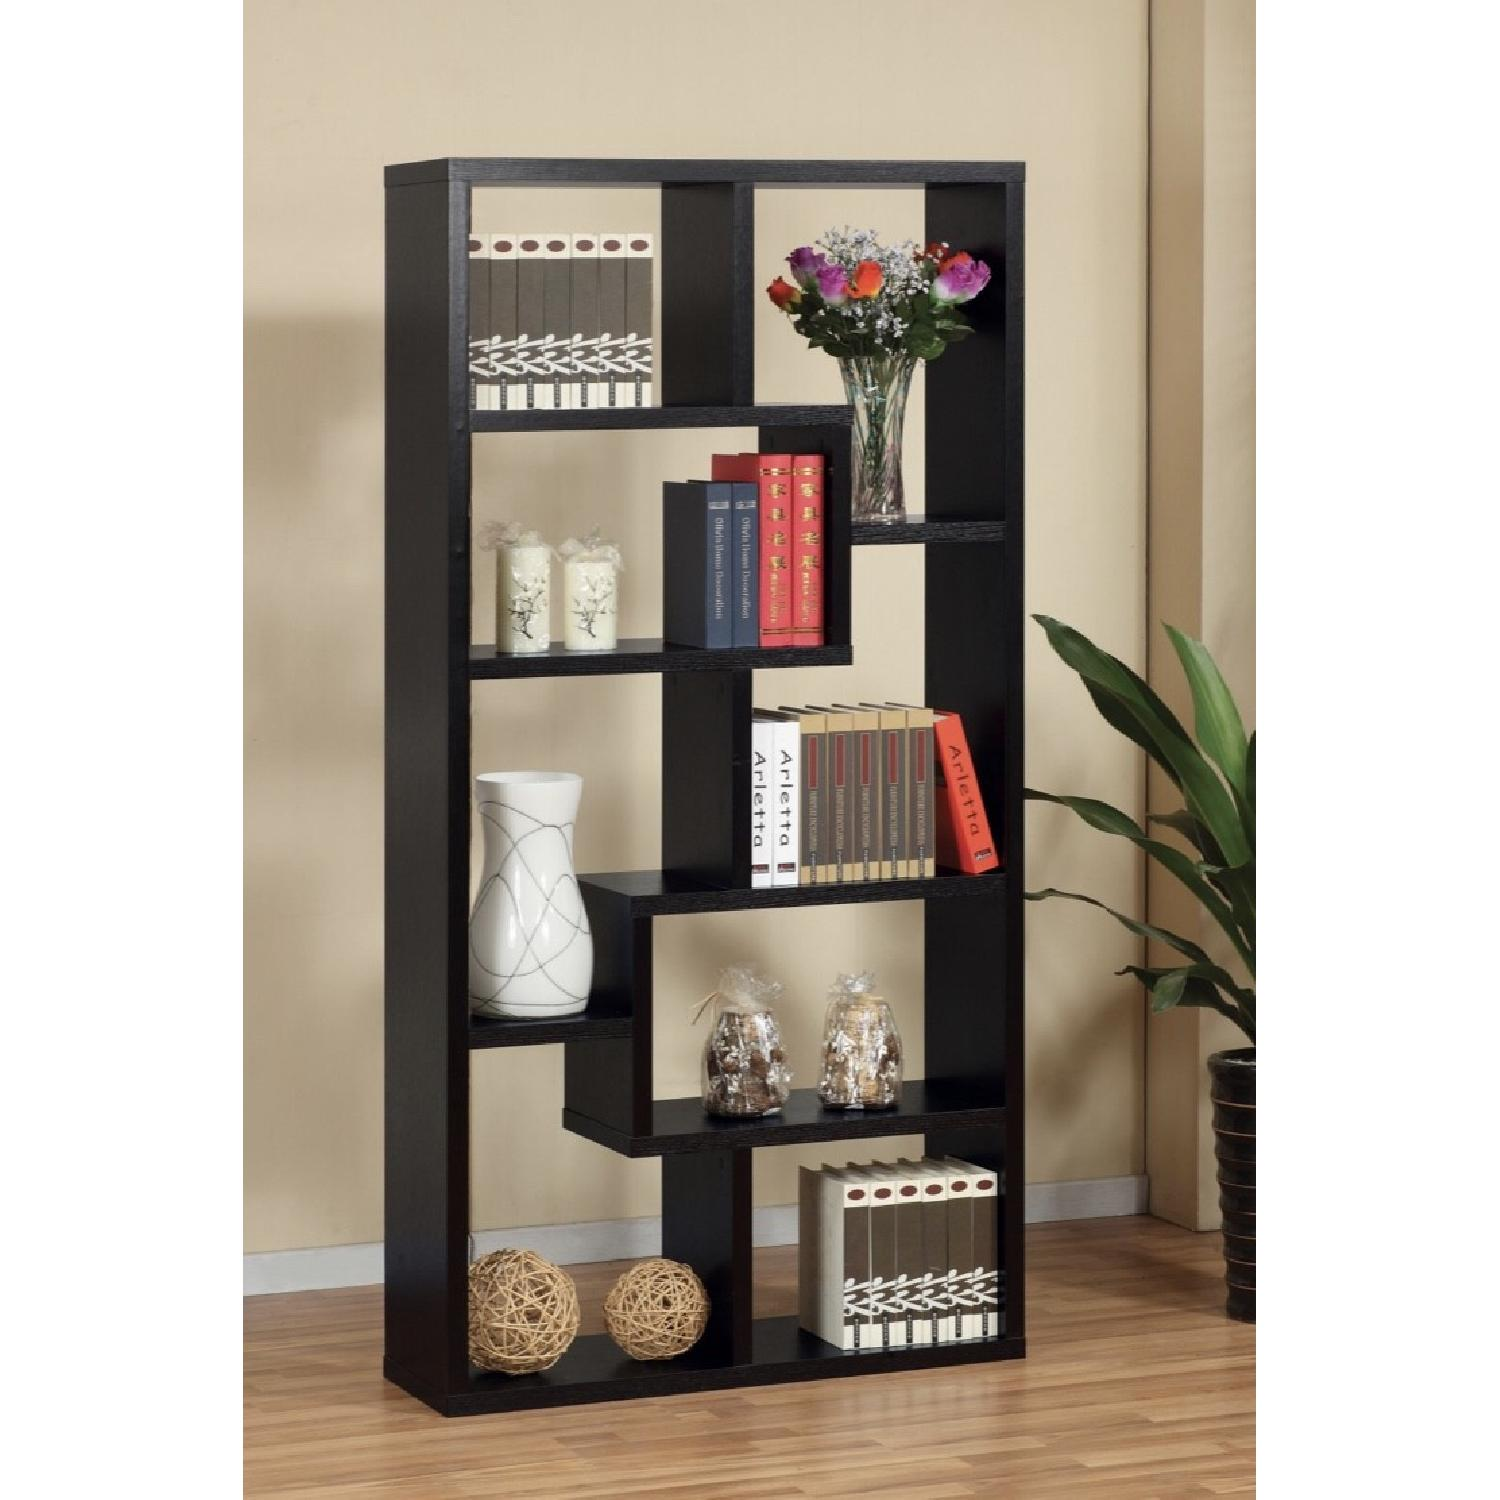 Joss & Main Chrysanthos Black Geometric Bookcase-5